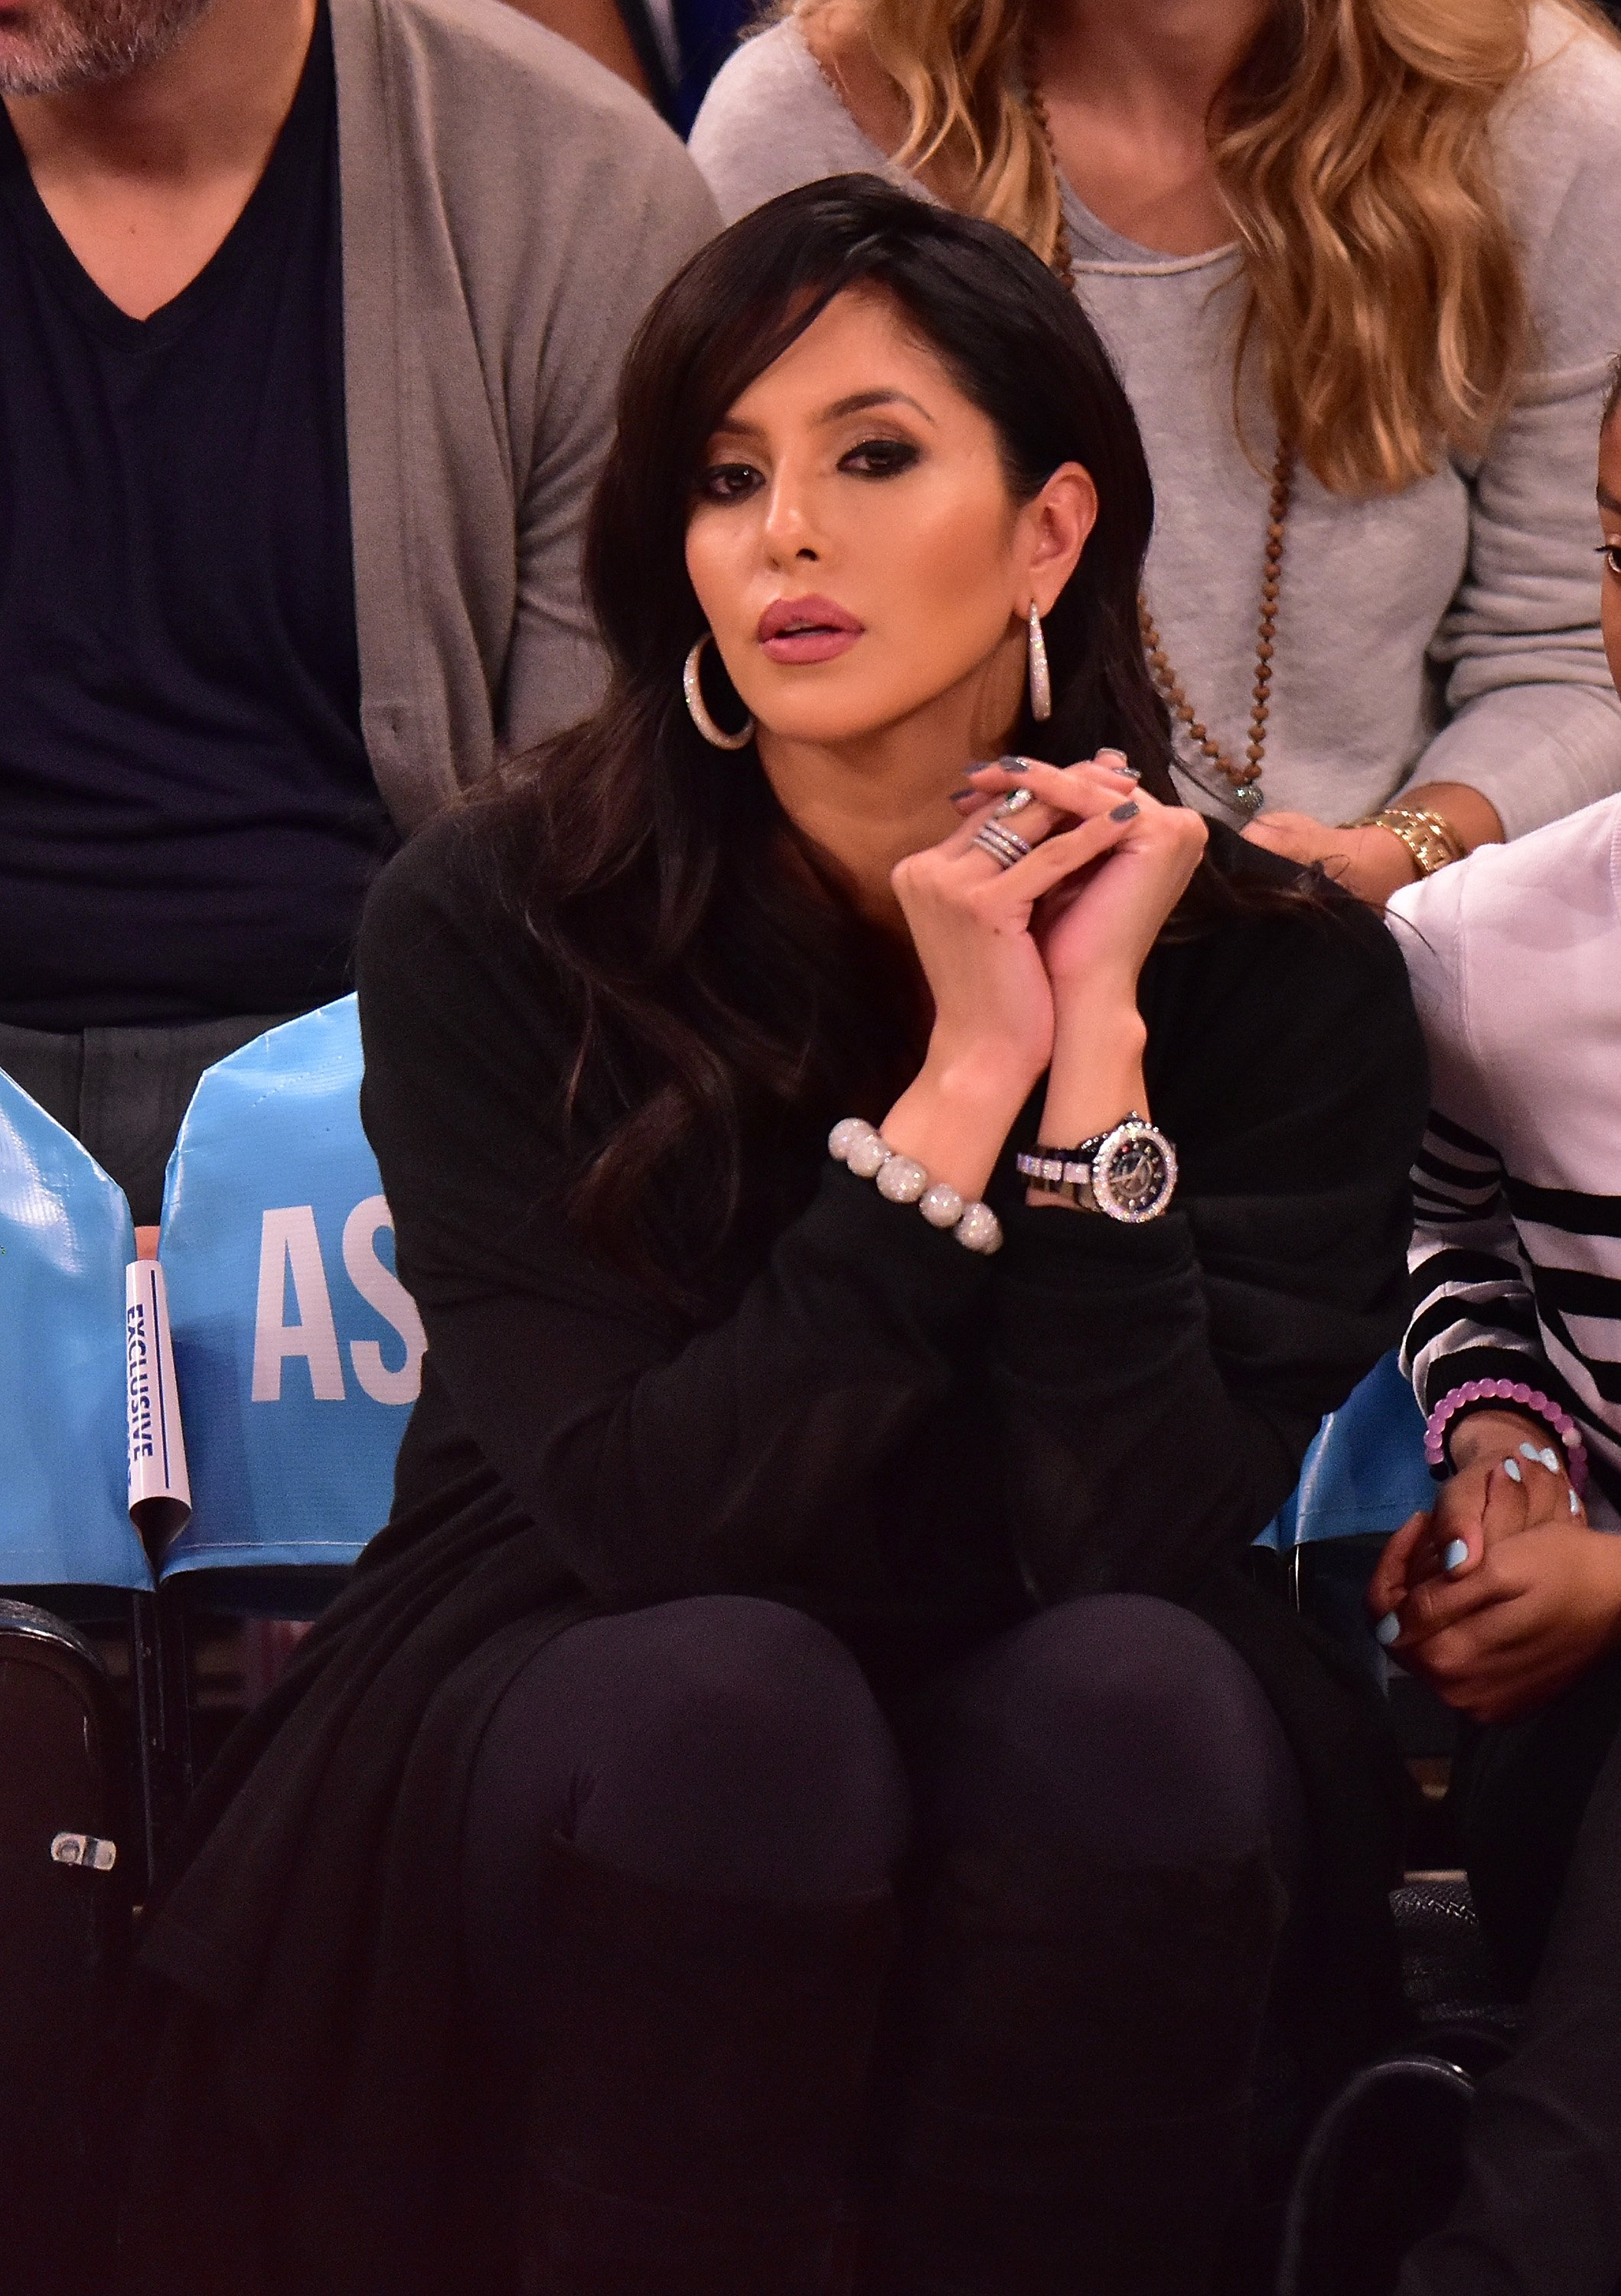 Vanessa Bryant attends a New York Knicks vs Los Angeles Lakers game at Madison Square Garden on November 8, 2015 in New York City. | Source: Getty Images